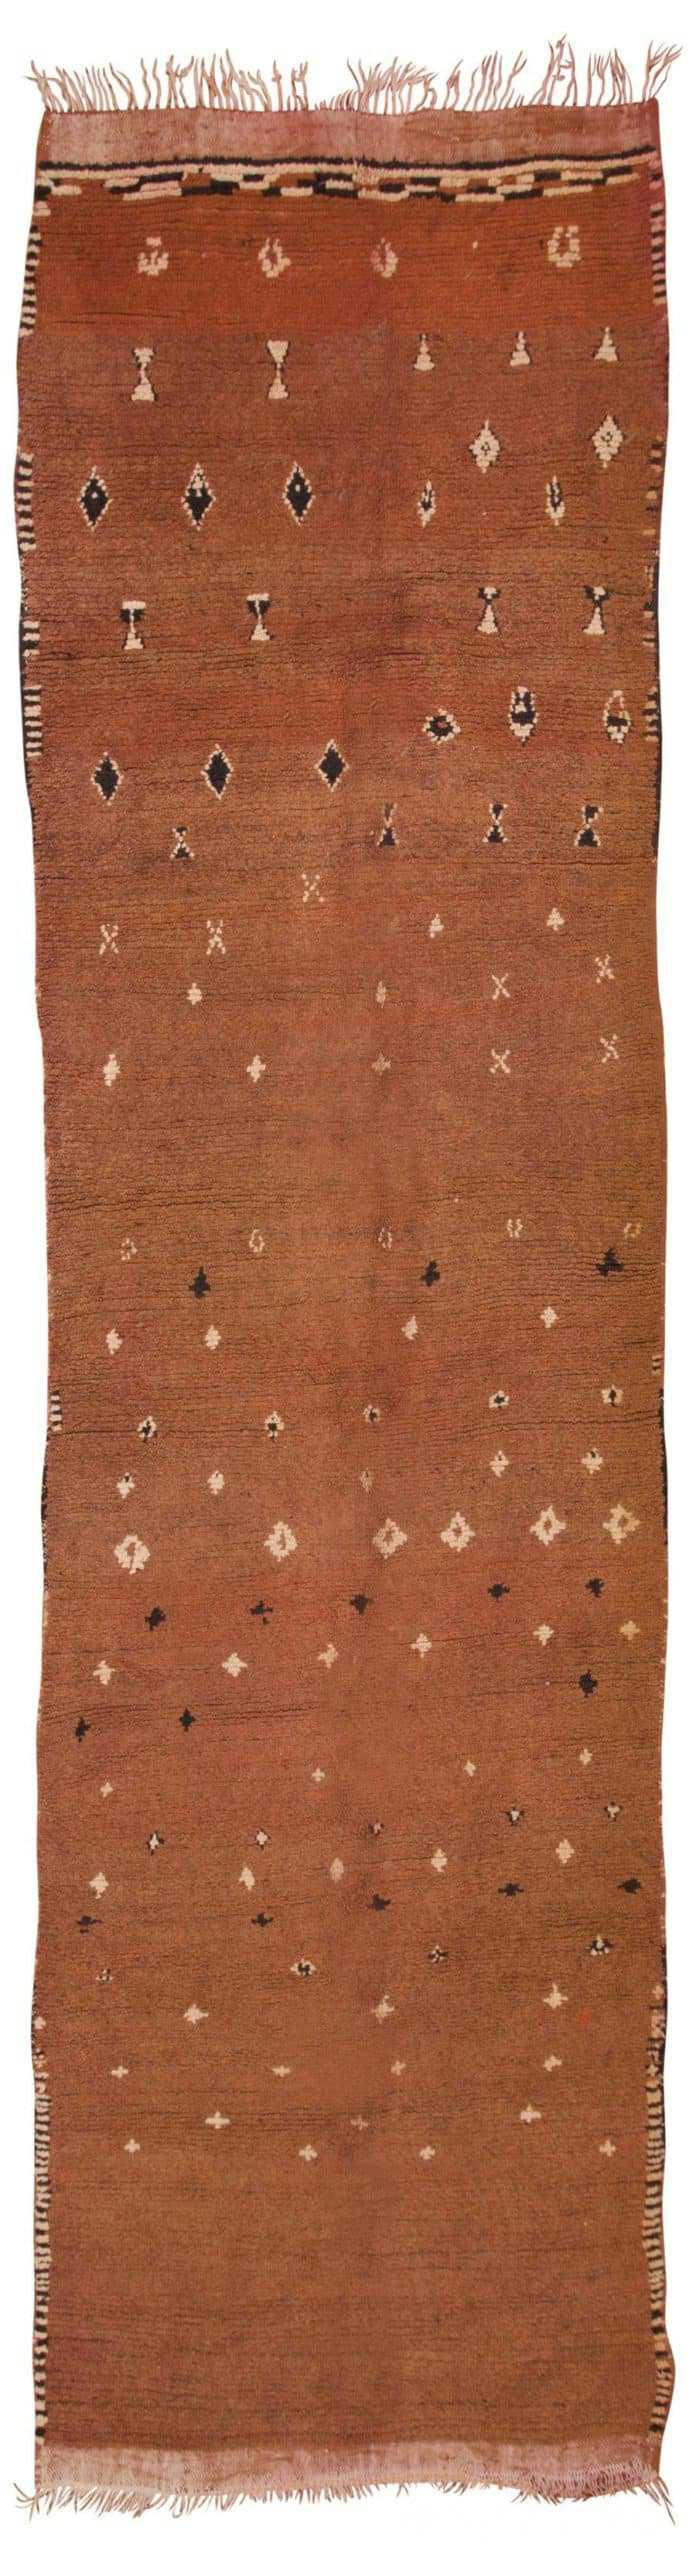 Moroccan Rug 45403 Large View